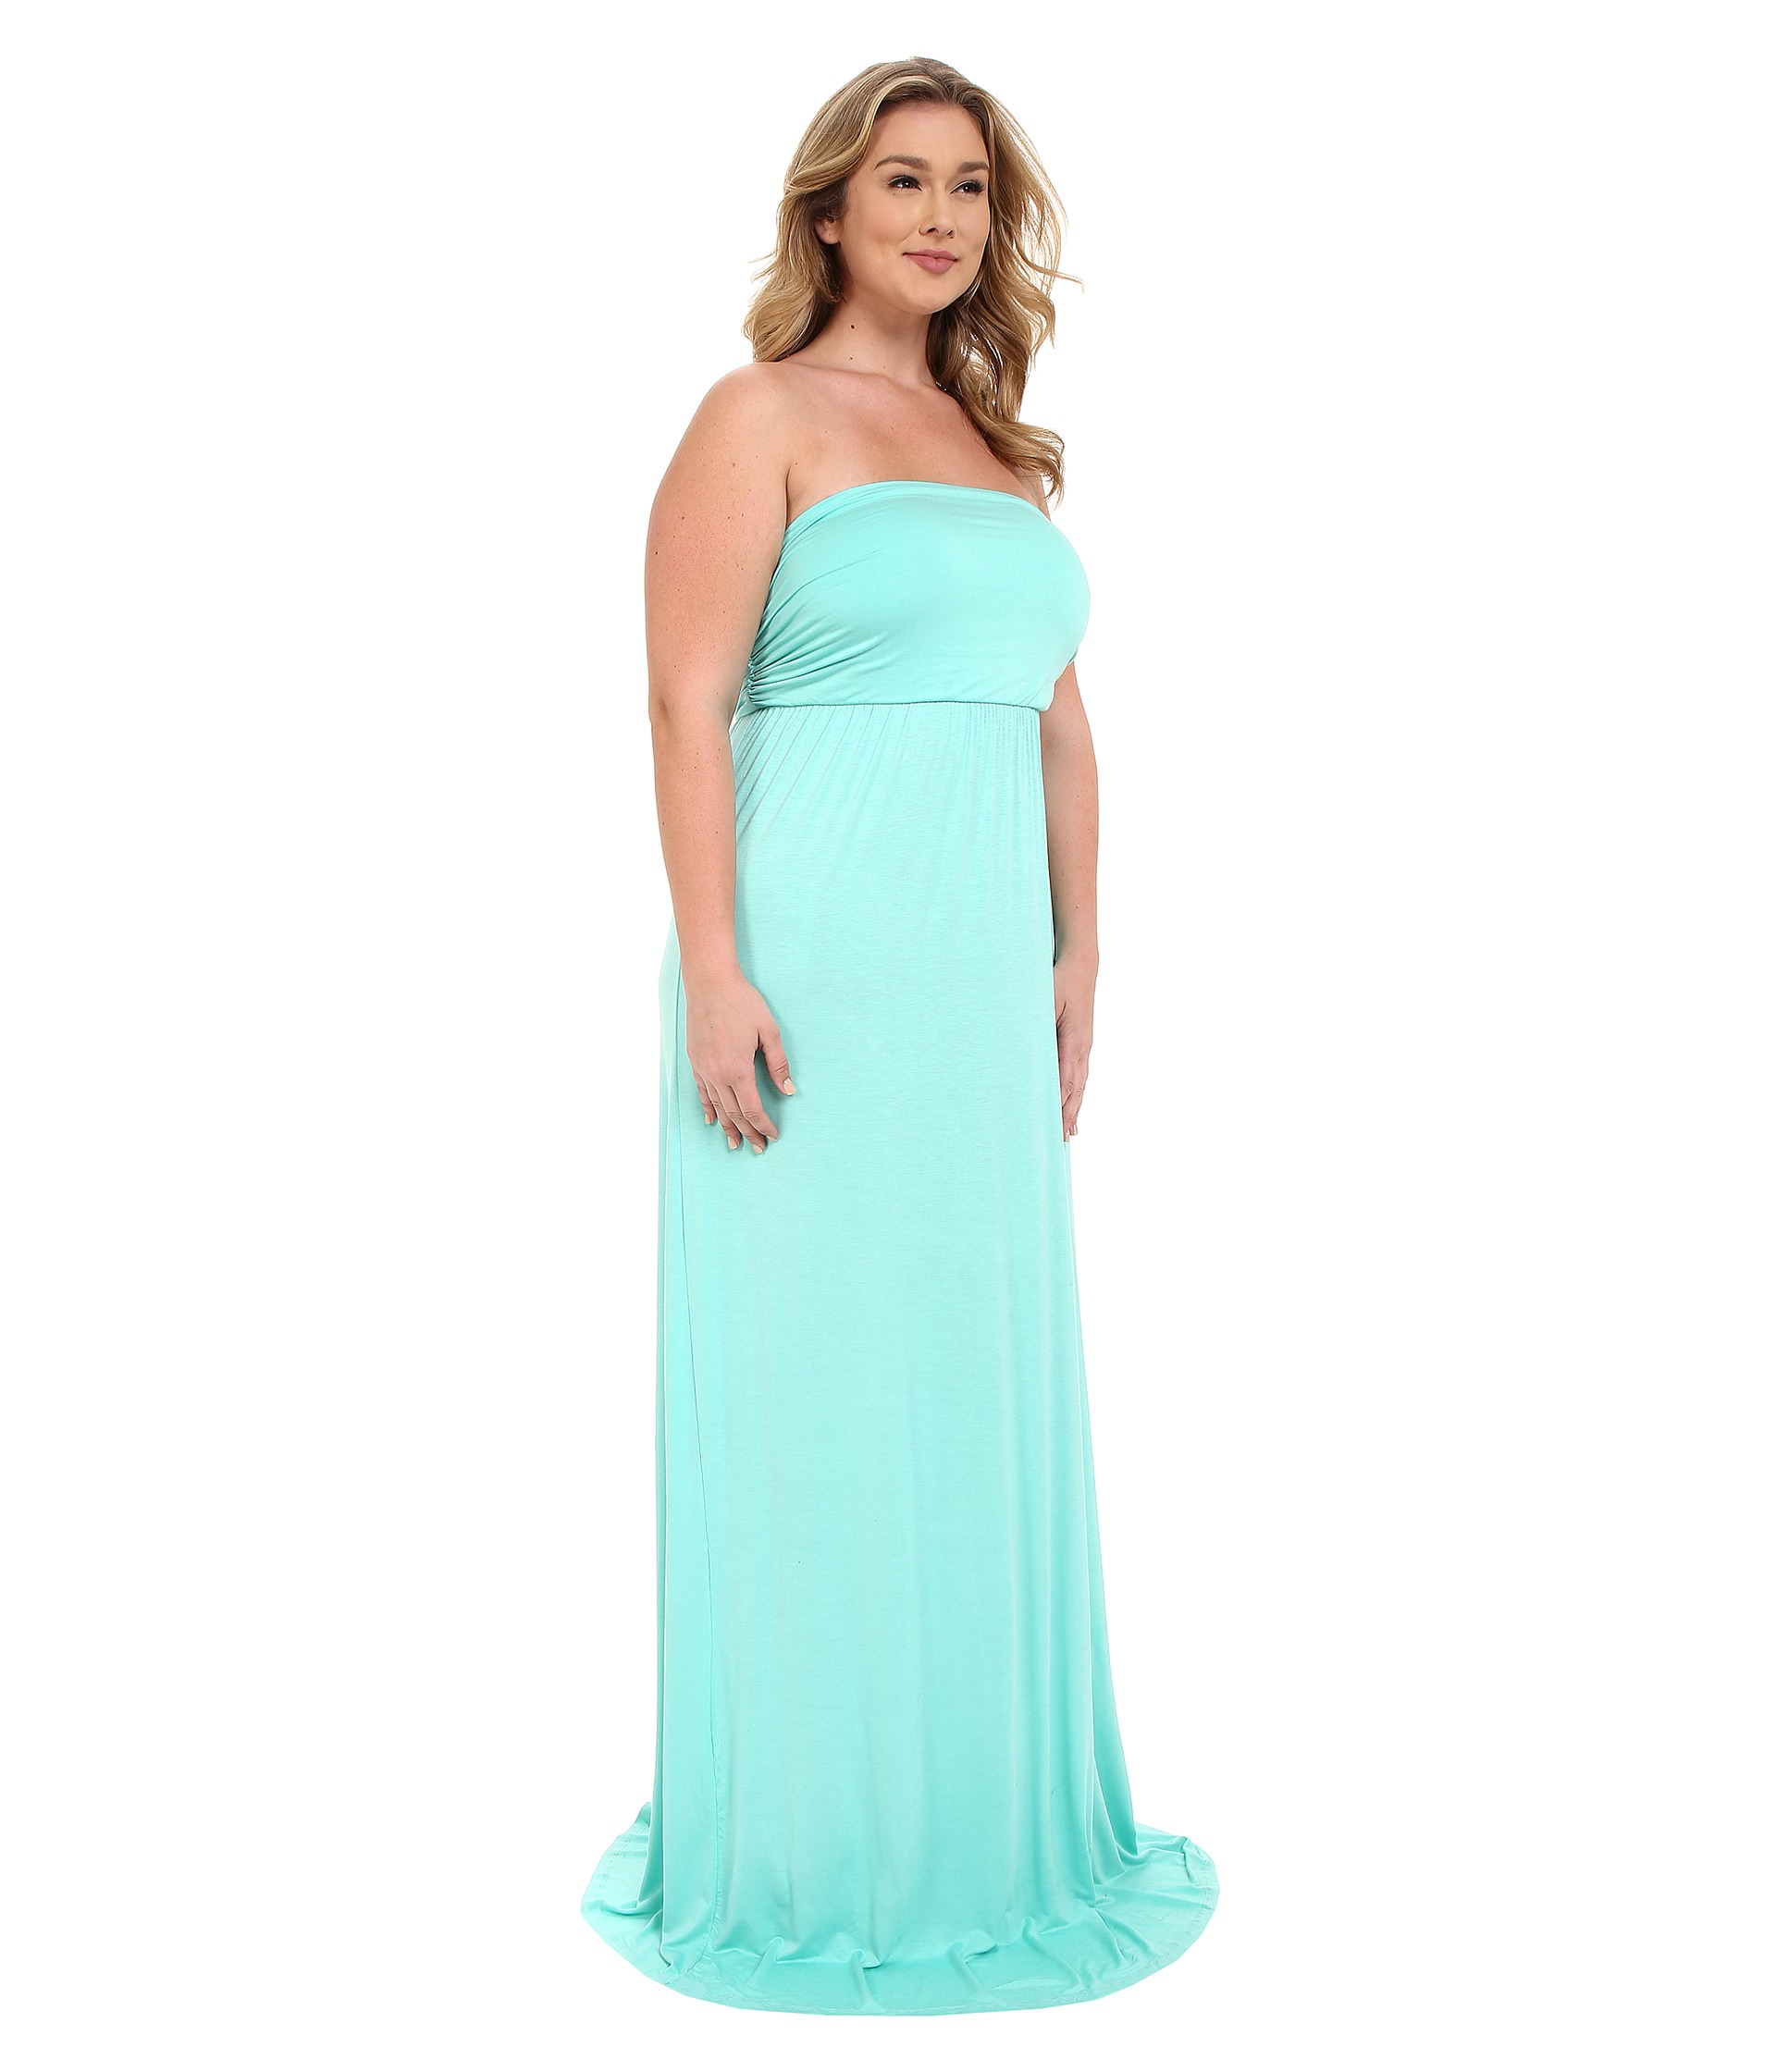 Old Fashioned Ball Gowns Dillards Model - Best Evening Gown ...